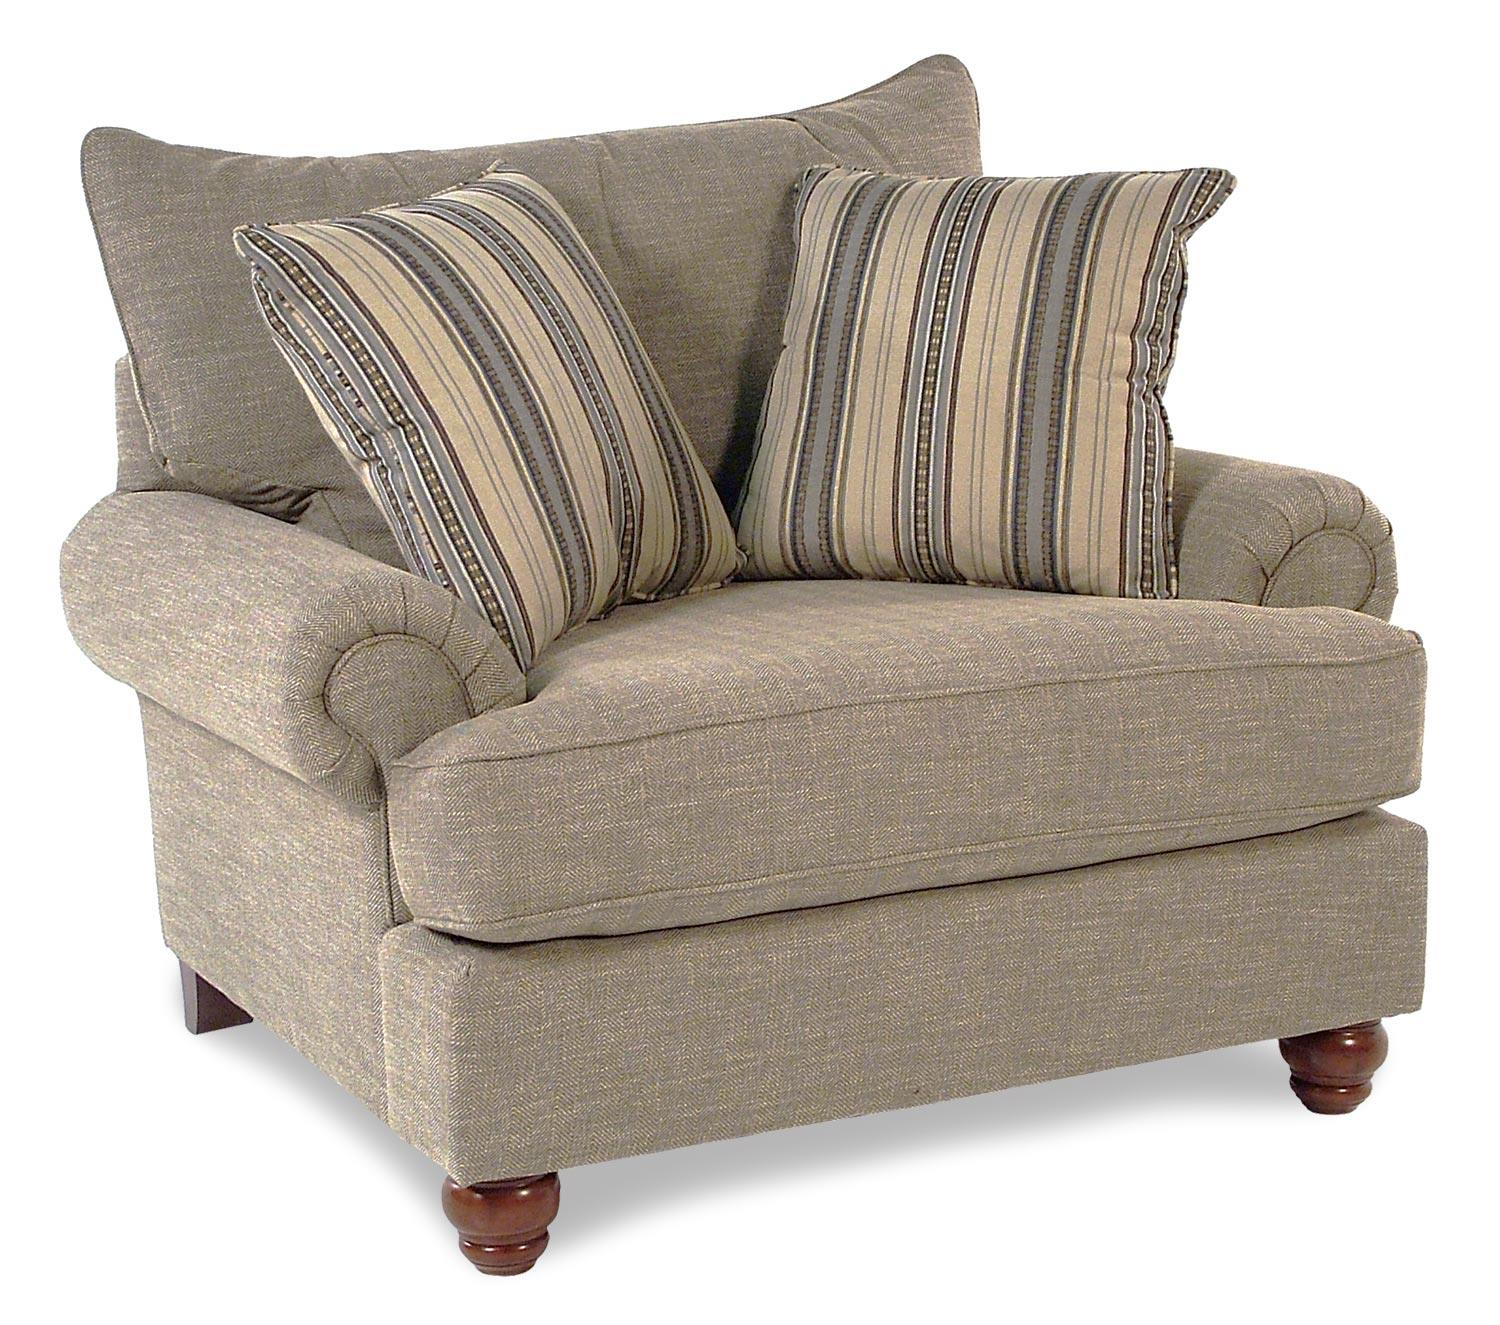 Cozy Life Westgate Upholstered Chair   Item Number: 797020PC TOLLIVER10